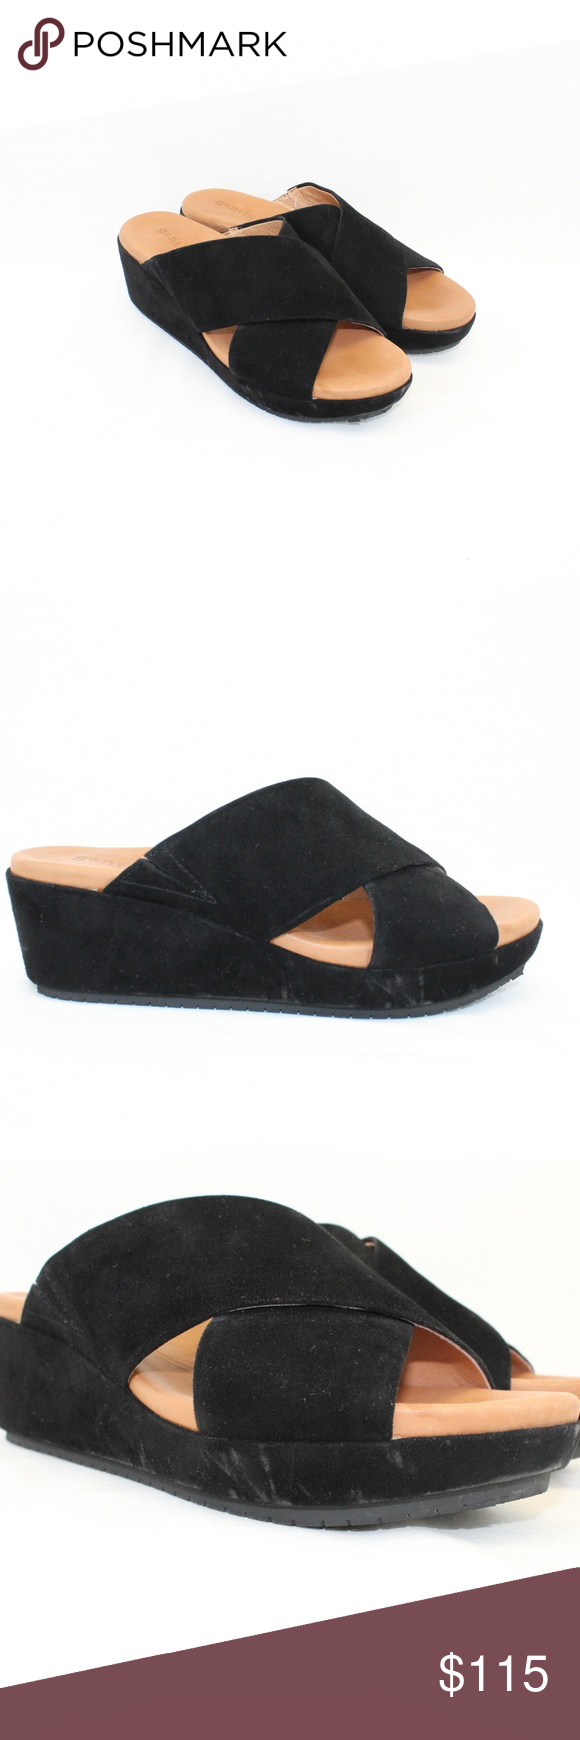 7356d34b53e Gentle Souls Black Mikenzie Platform Slide Wedges Gentle Souls Black Mikenzie  Platform X-Band Slide